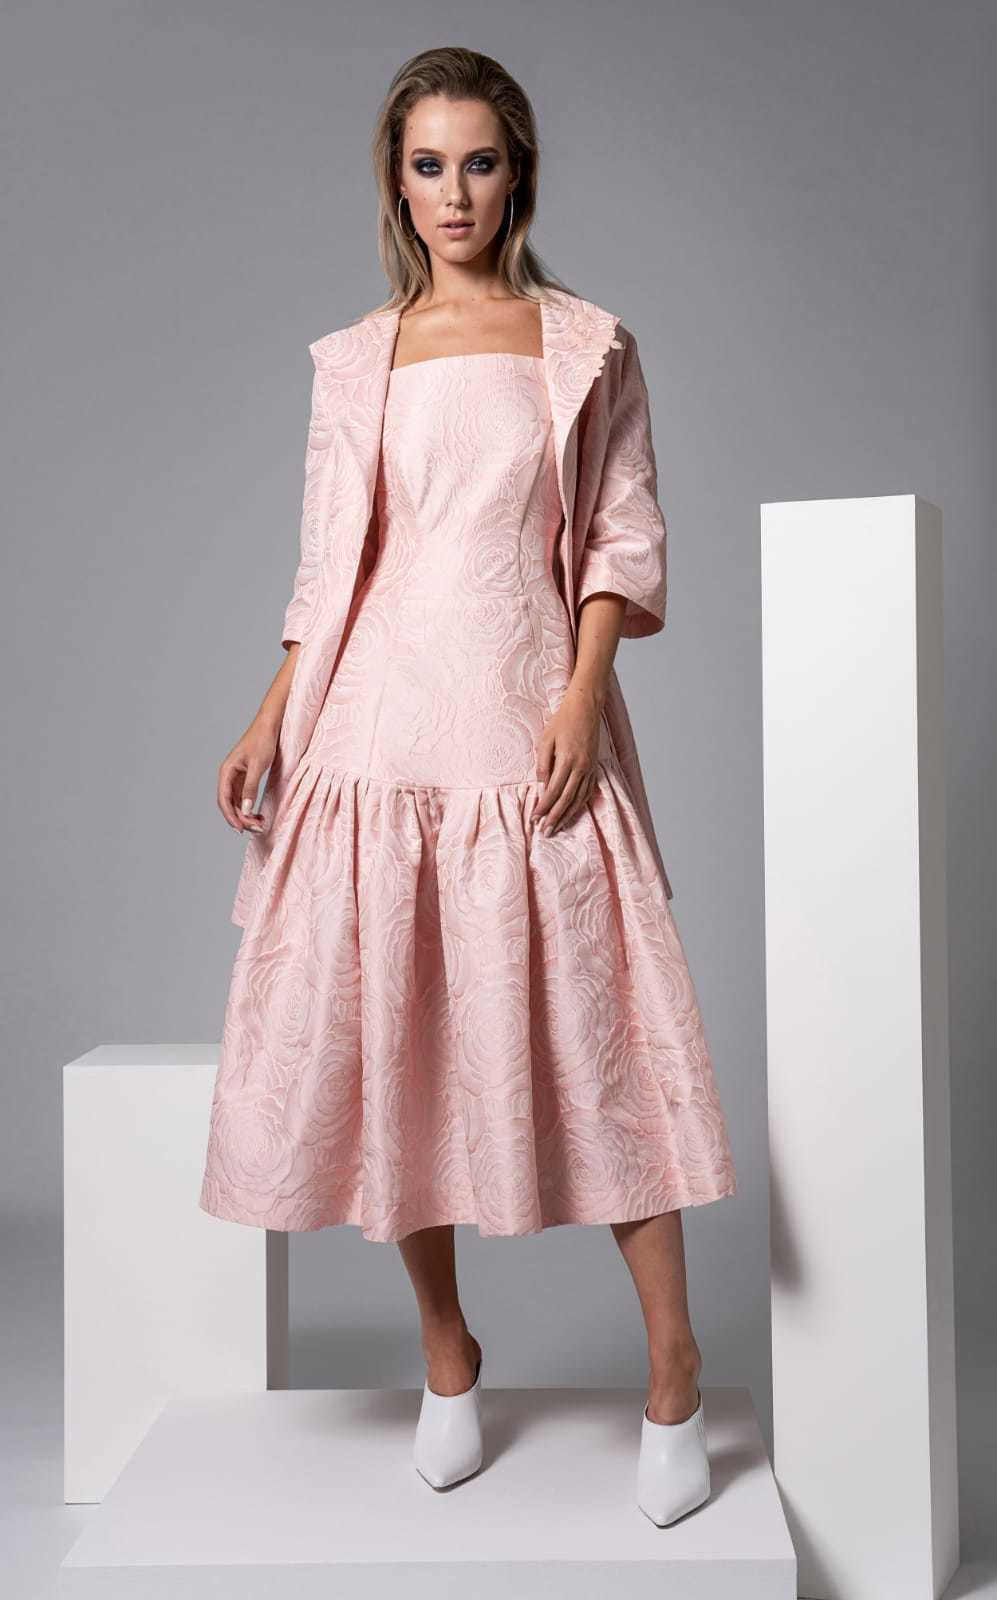 Harris Dress in Pale Pink Floral Embossed Fabric